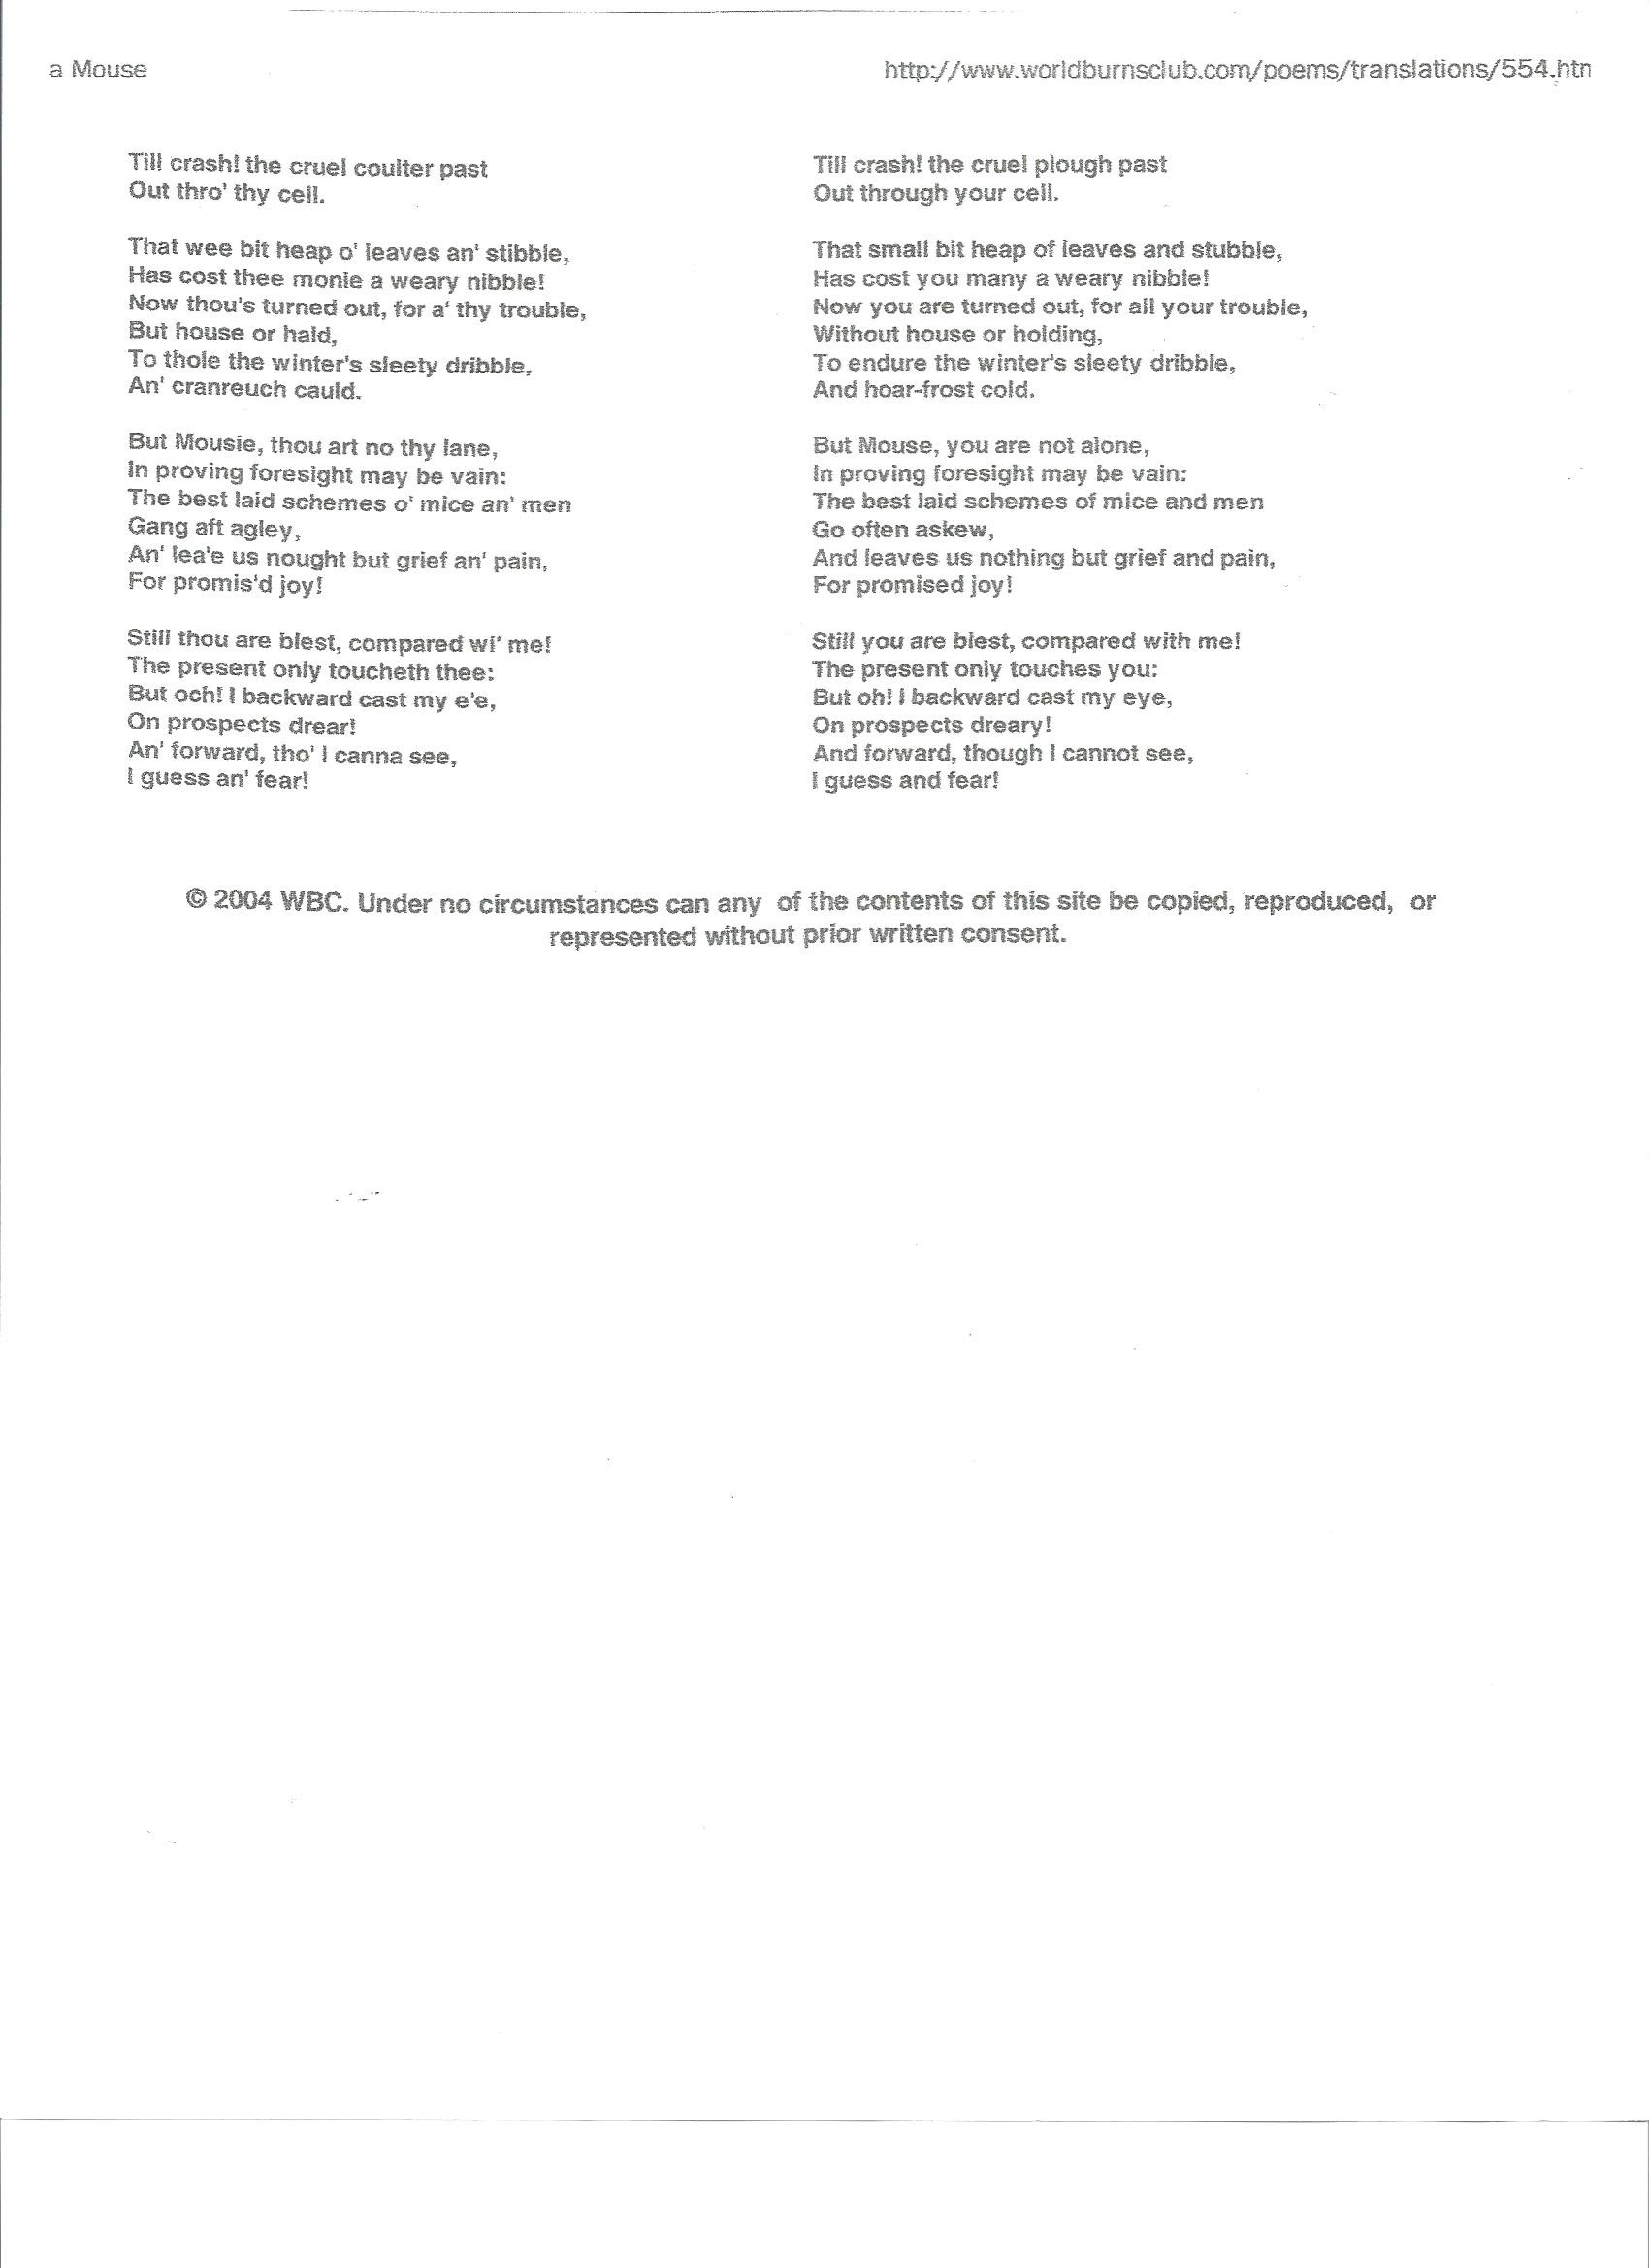 Of Mice And Men Worksheet Answers Templates and Worksheets – Of Mice and Men Worksheets